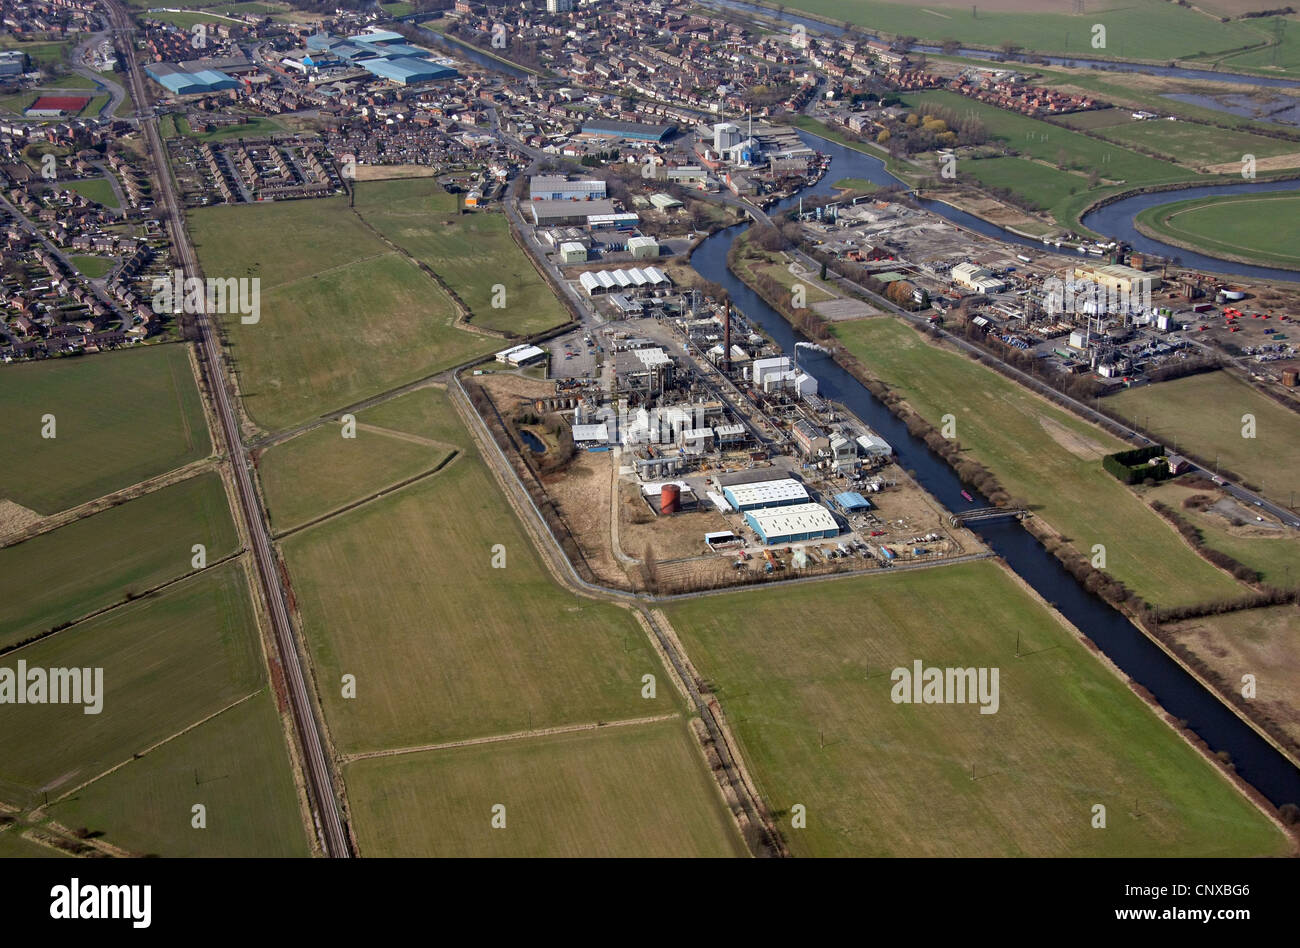 Vue aérienne d'une usine chimique en common Lane, West Yorkshire, Knottingley Photo Stock